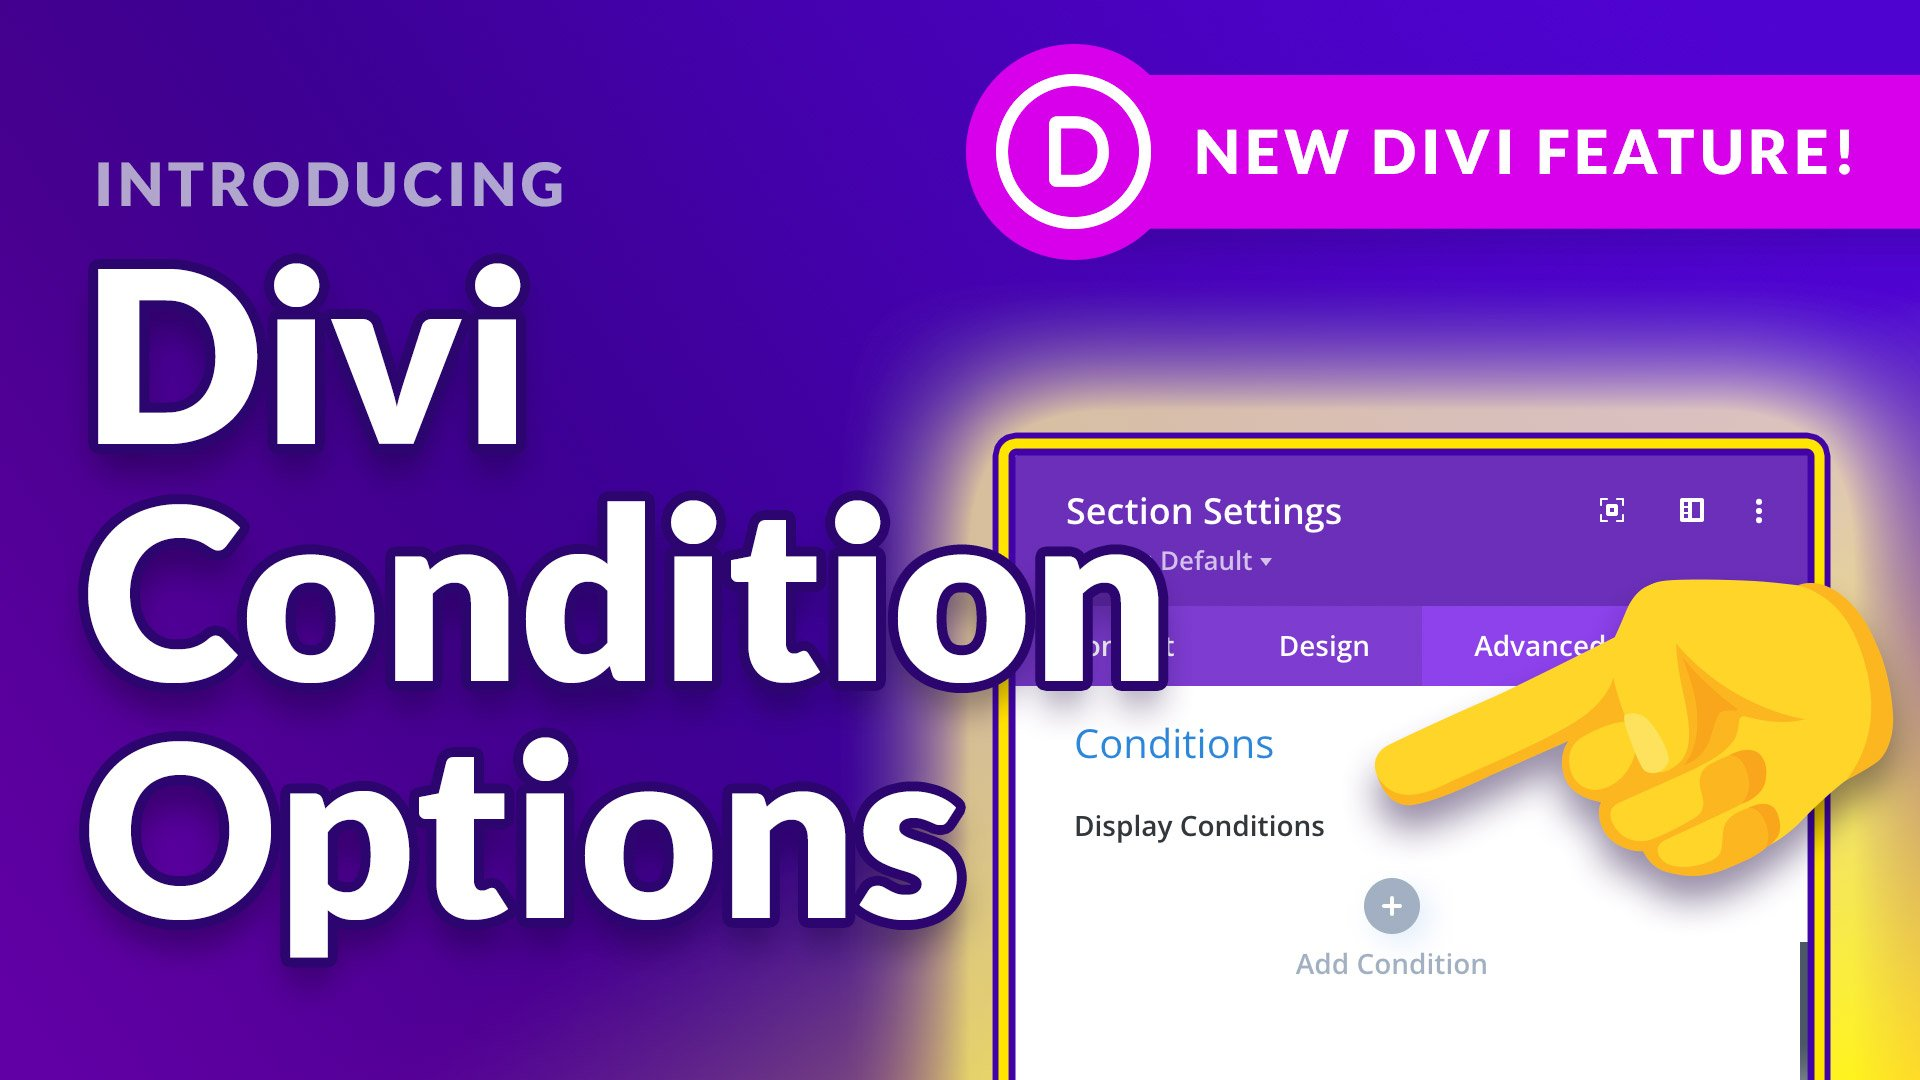 Hide & Display Content Using Divi's New Display Conditions